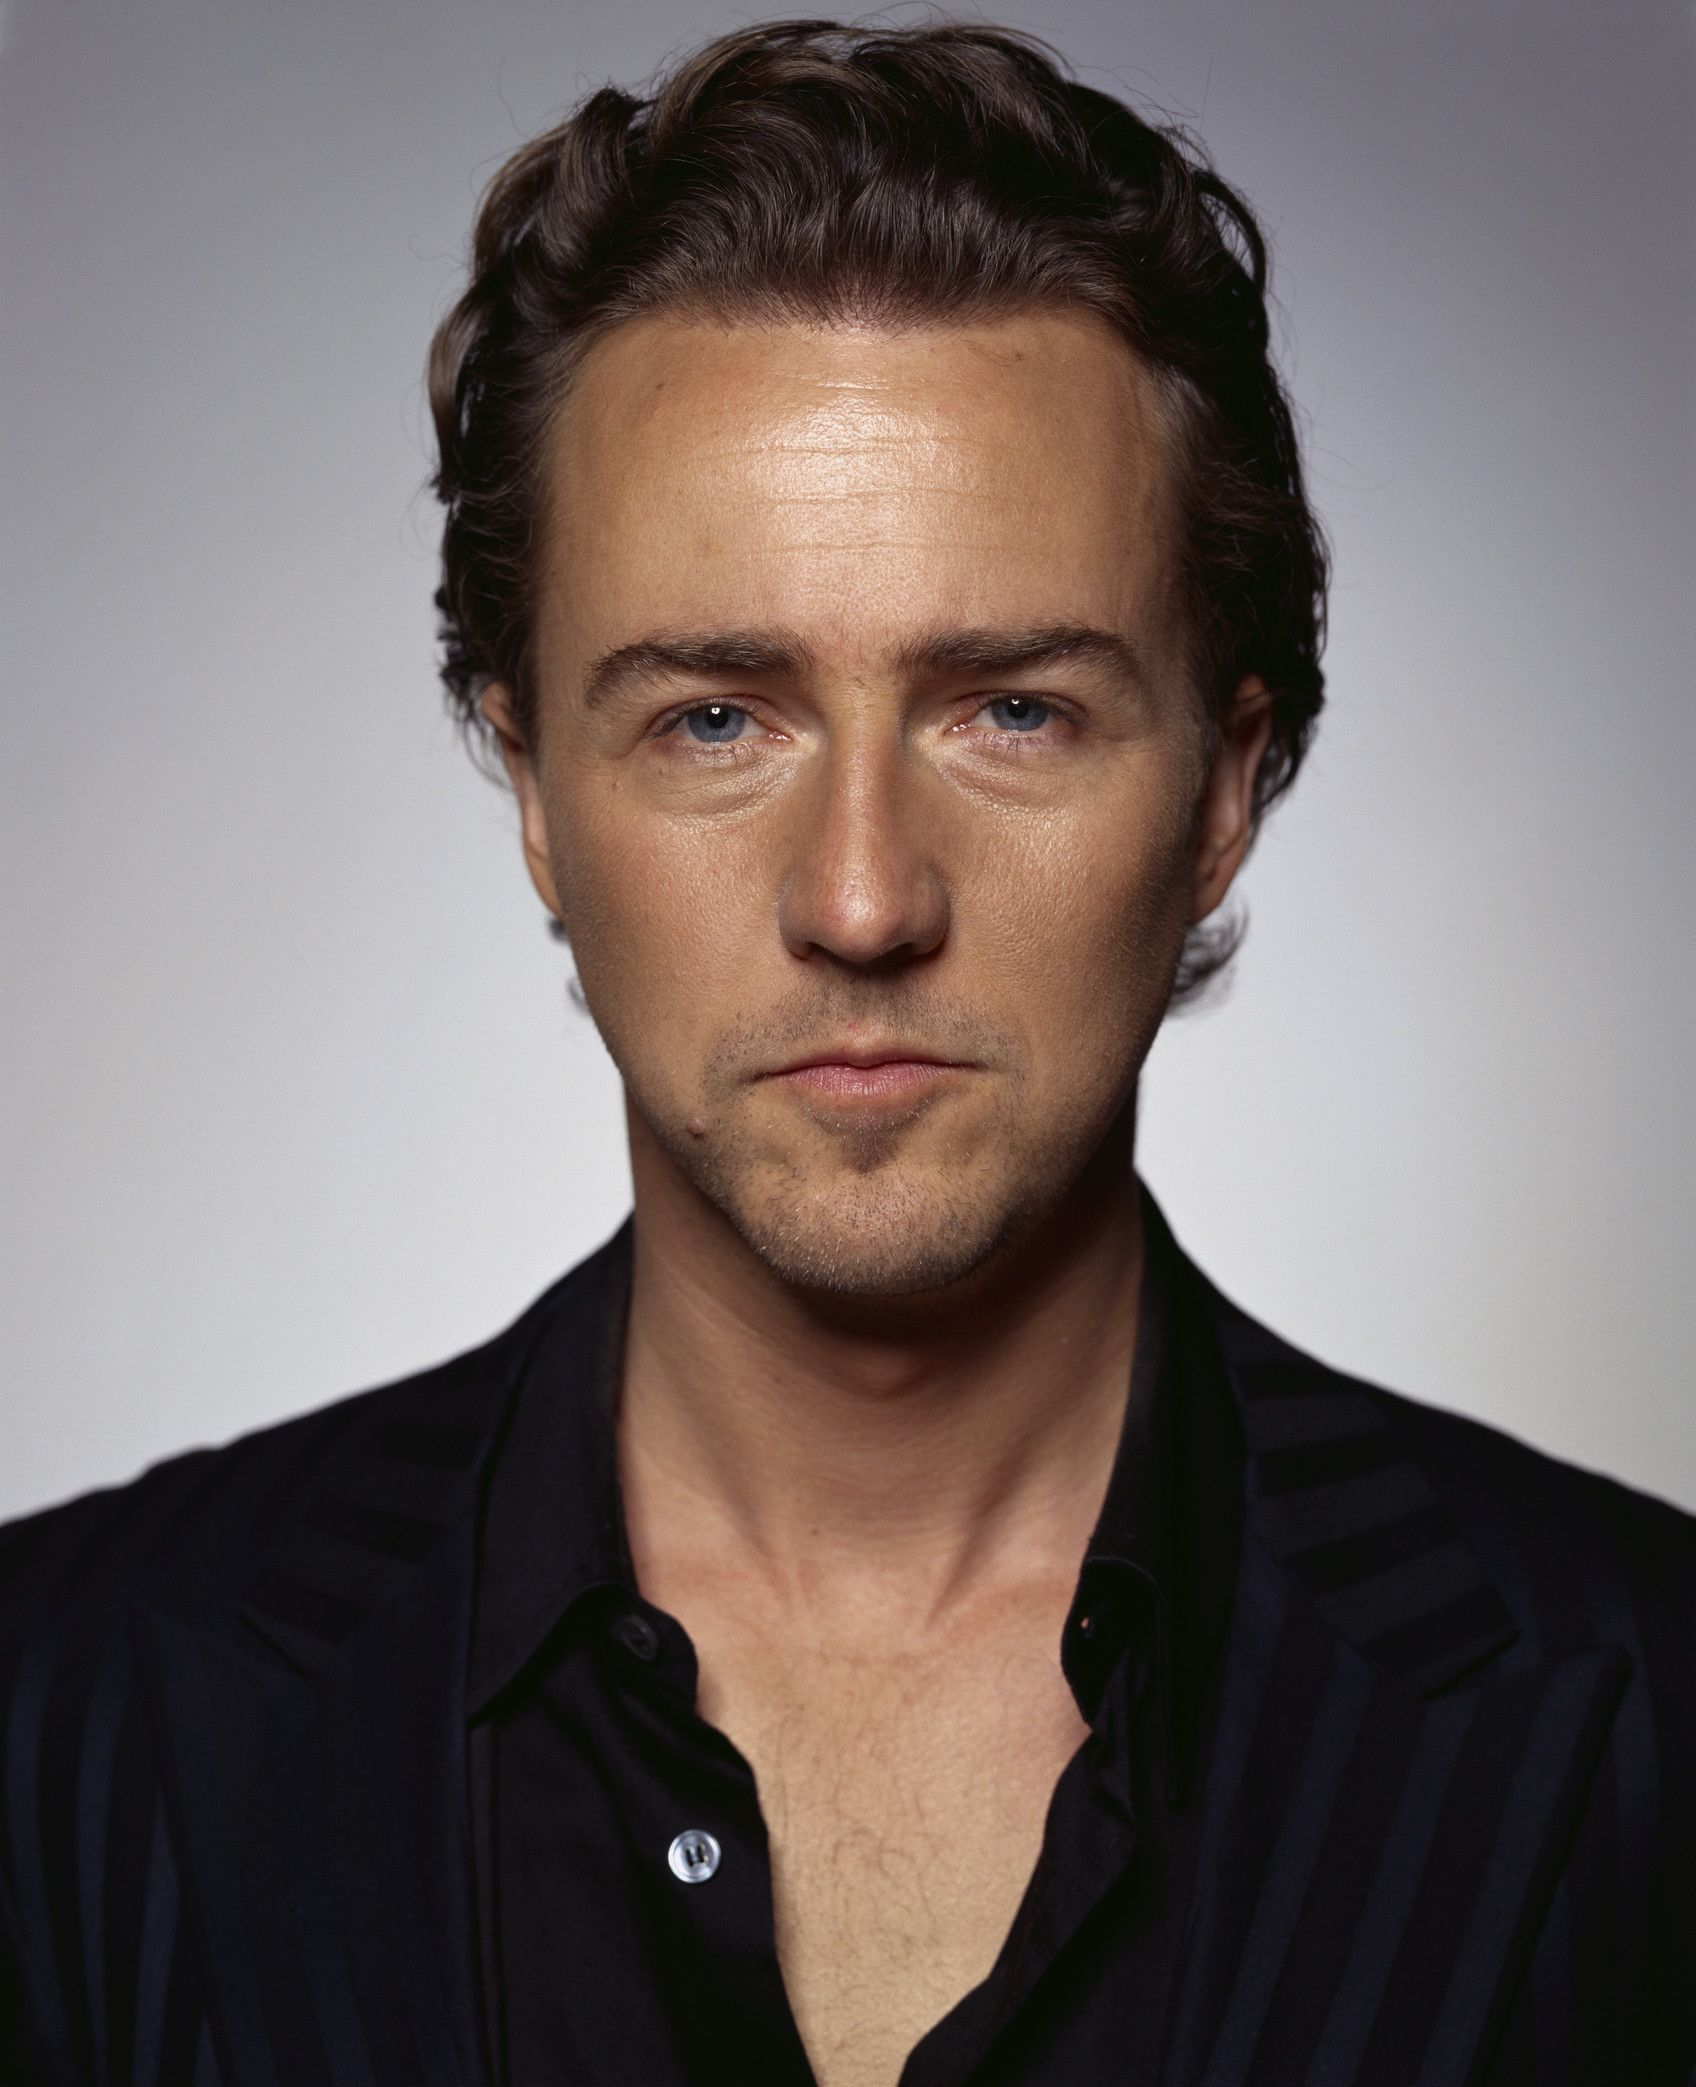 edward norton wifeedward norton fight club, edward norton films, edward norton wife, edward norton 2016, edward norton height, edward norton hulk, edward norton 2017, edward norton interview, edward norton gif, edward norton фильмы, edward norton kingdom of heaven, edward norton wiki, edward norton filmography, edward norton kinopoisk, edward norton oscar, edward norton twitter, edward norton imdb, edward norton sausage party, edward norton modern family, edward norton vs teyana taylor